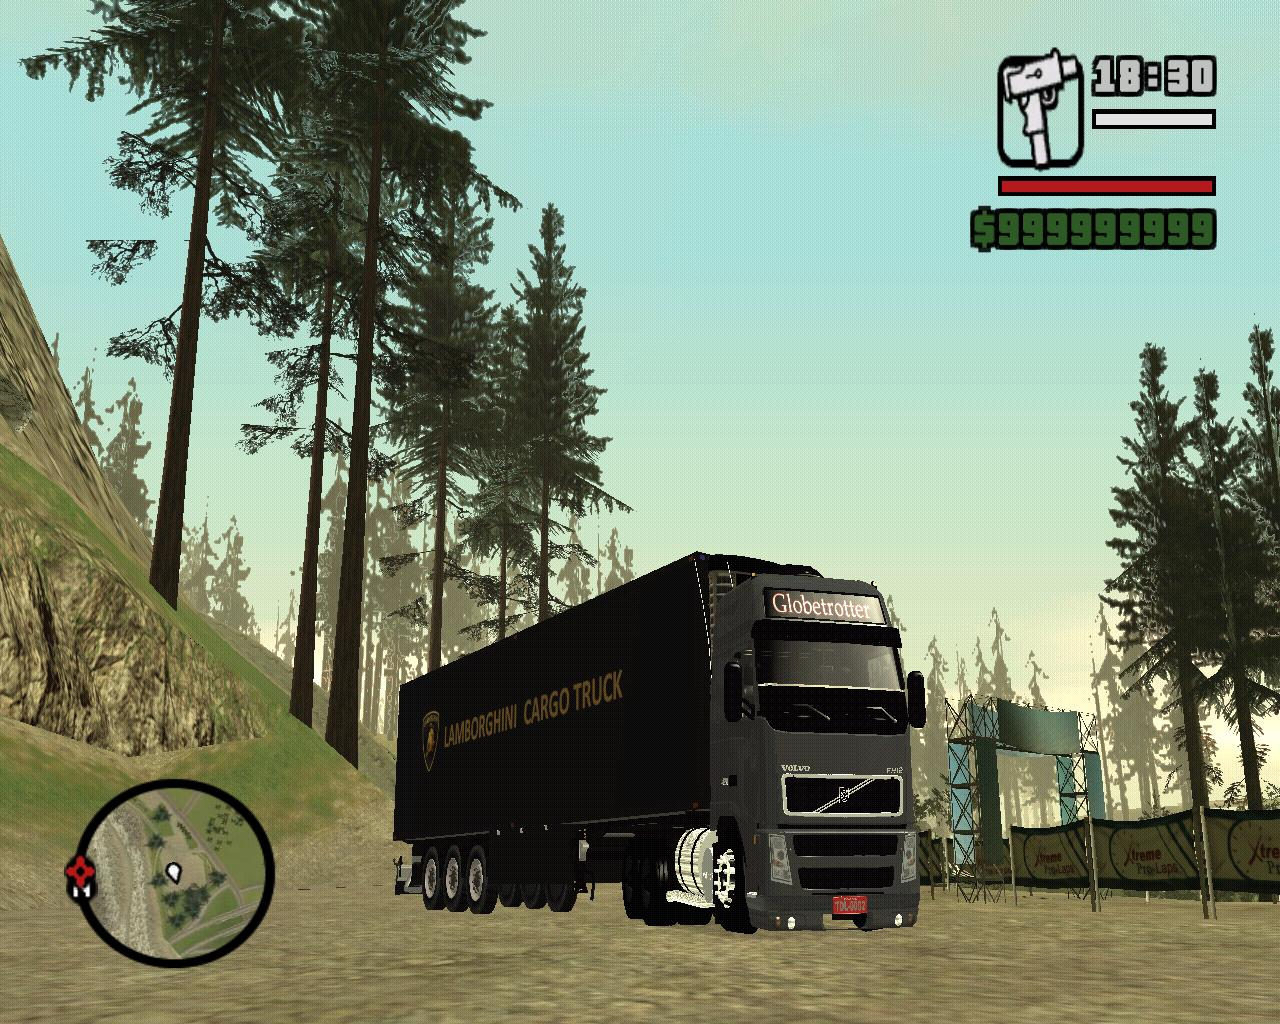 Download Gta San Andreas Торрент 2012